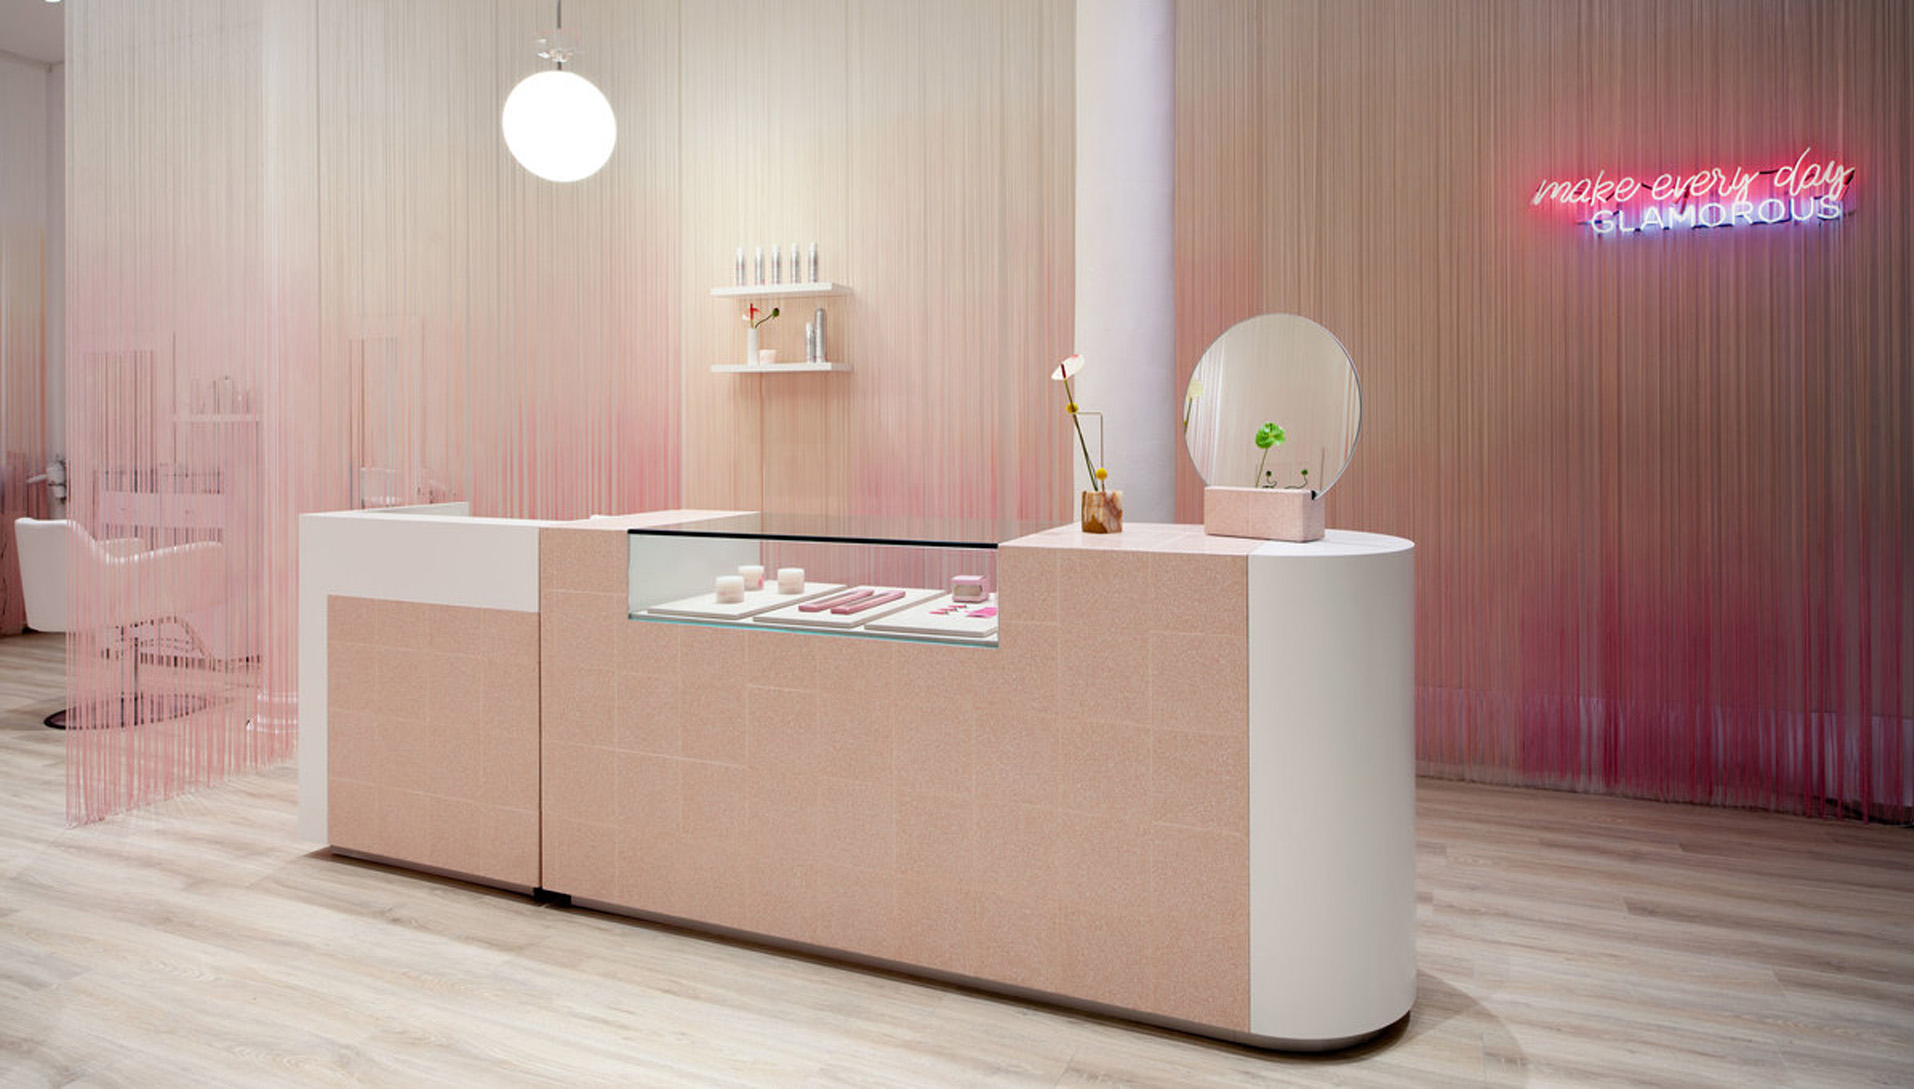 Shop with a white and pink interior